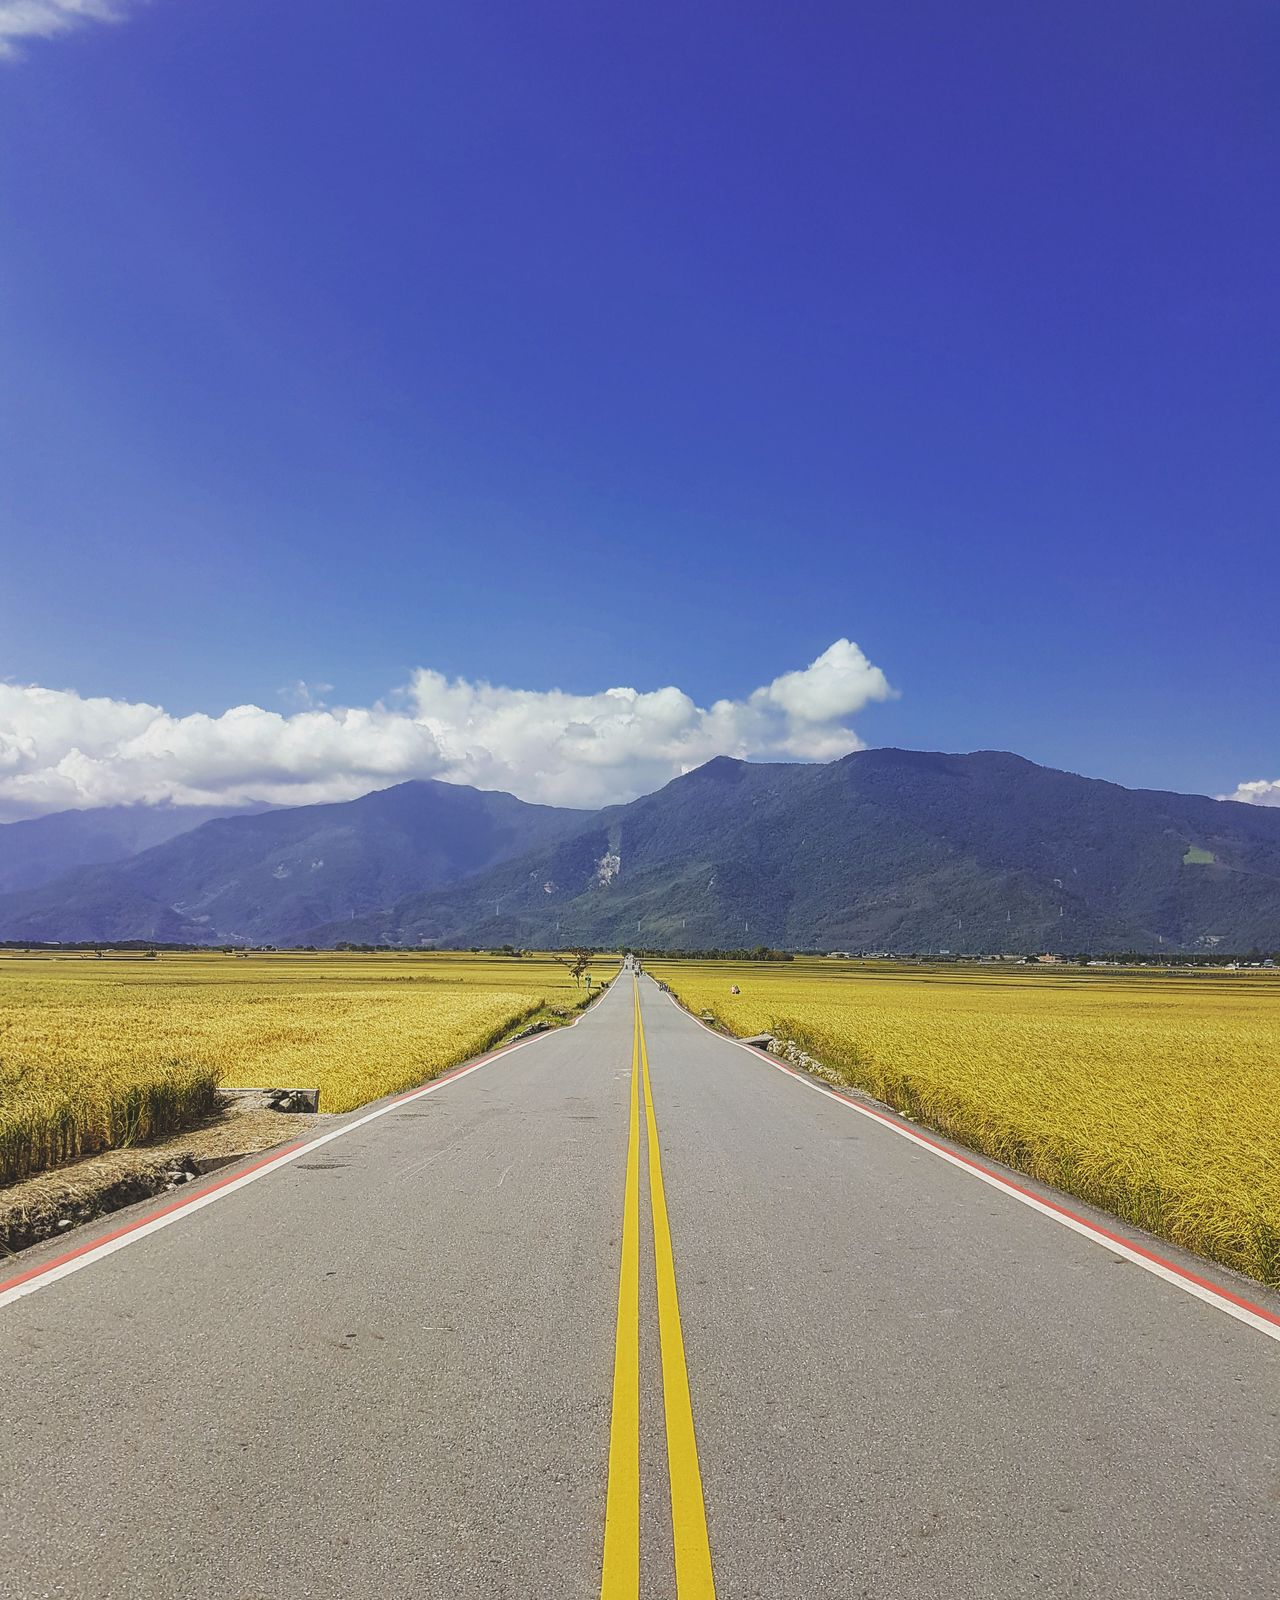 Nature Beauty In Nature Transportation Agriculture Landscape Yellow Road Scenics Sky Cloud - Sky Outdoors The Way Forward Blue Nature Taiwan Travel Photo Endless Quiet Moments Quiet Nature Photography Bolangdadao Taitung,taiwan Taitung